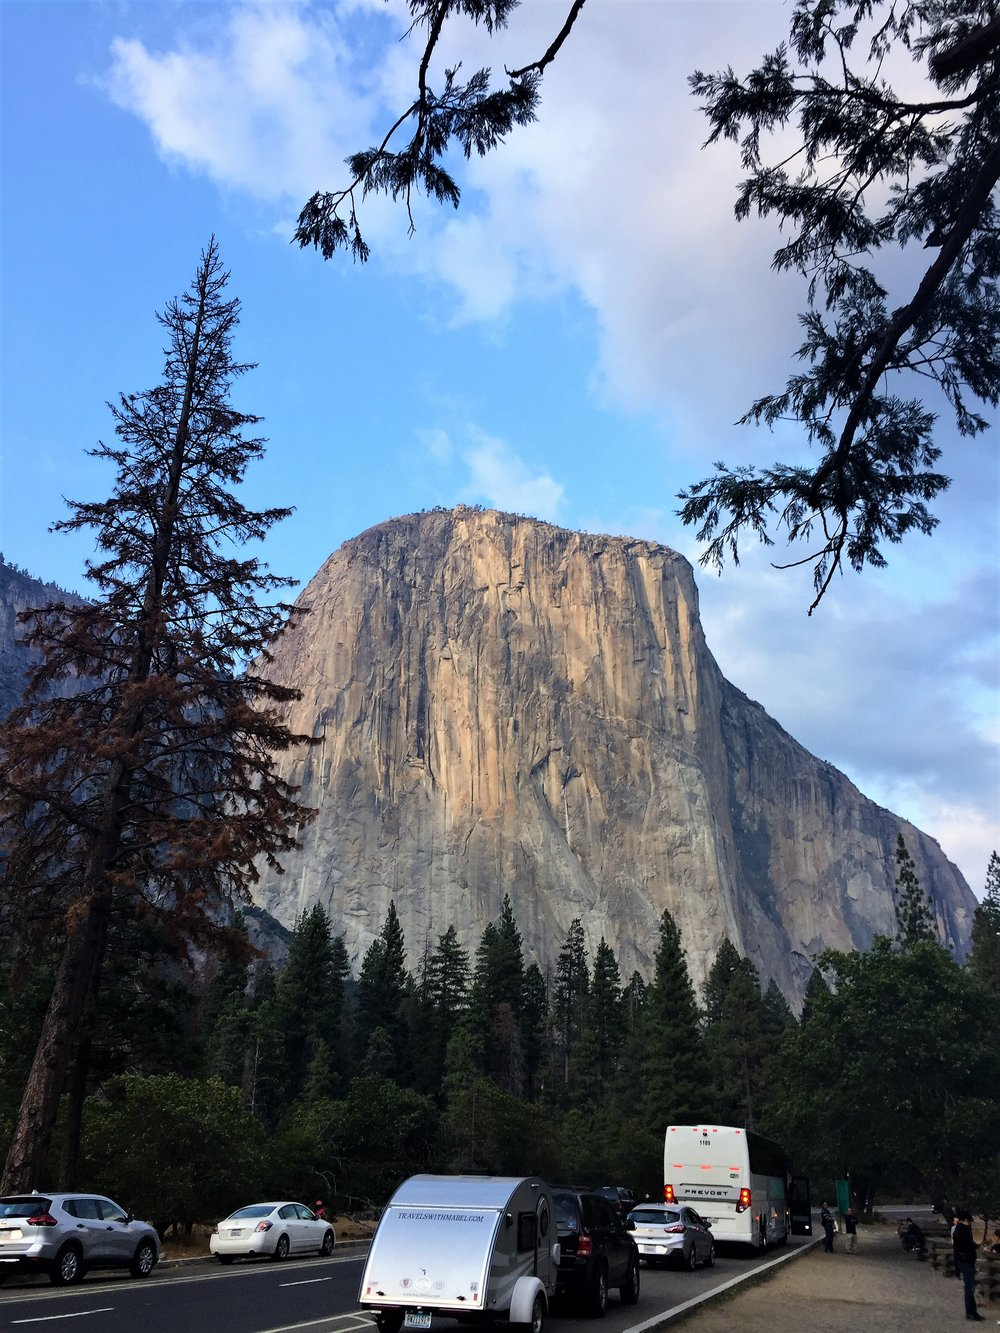 Arabella in front of El Capitain, Yosemite NP